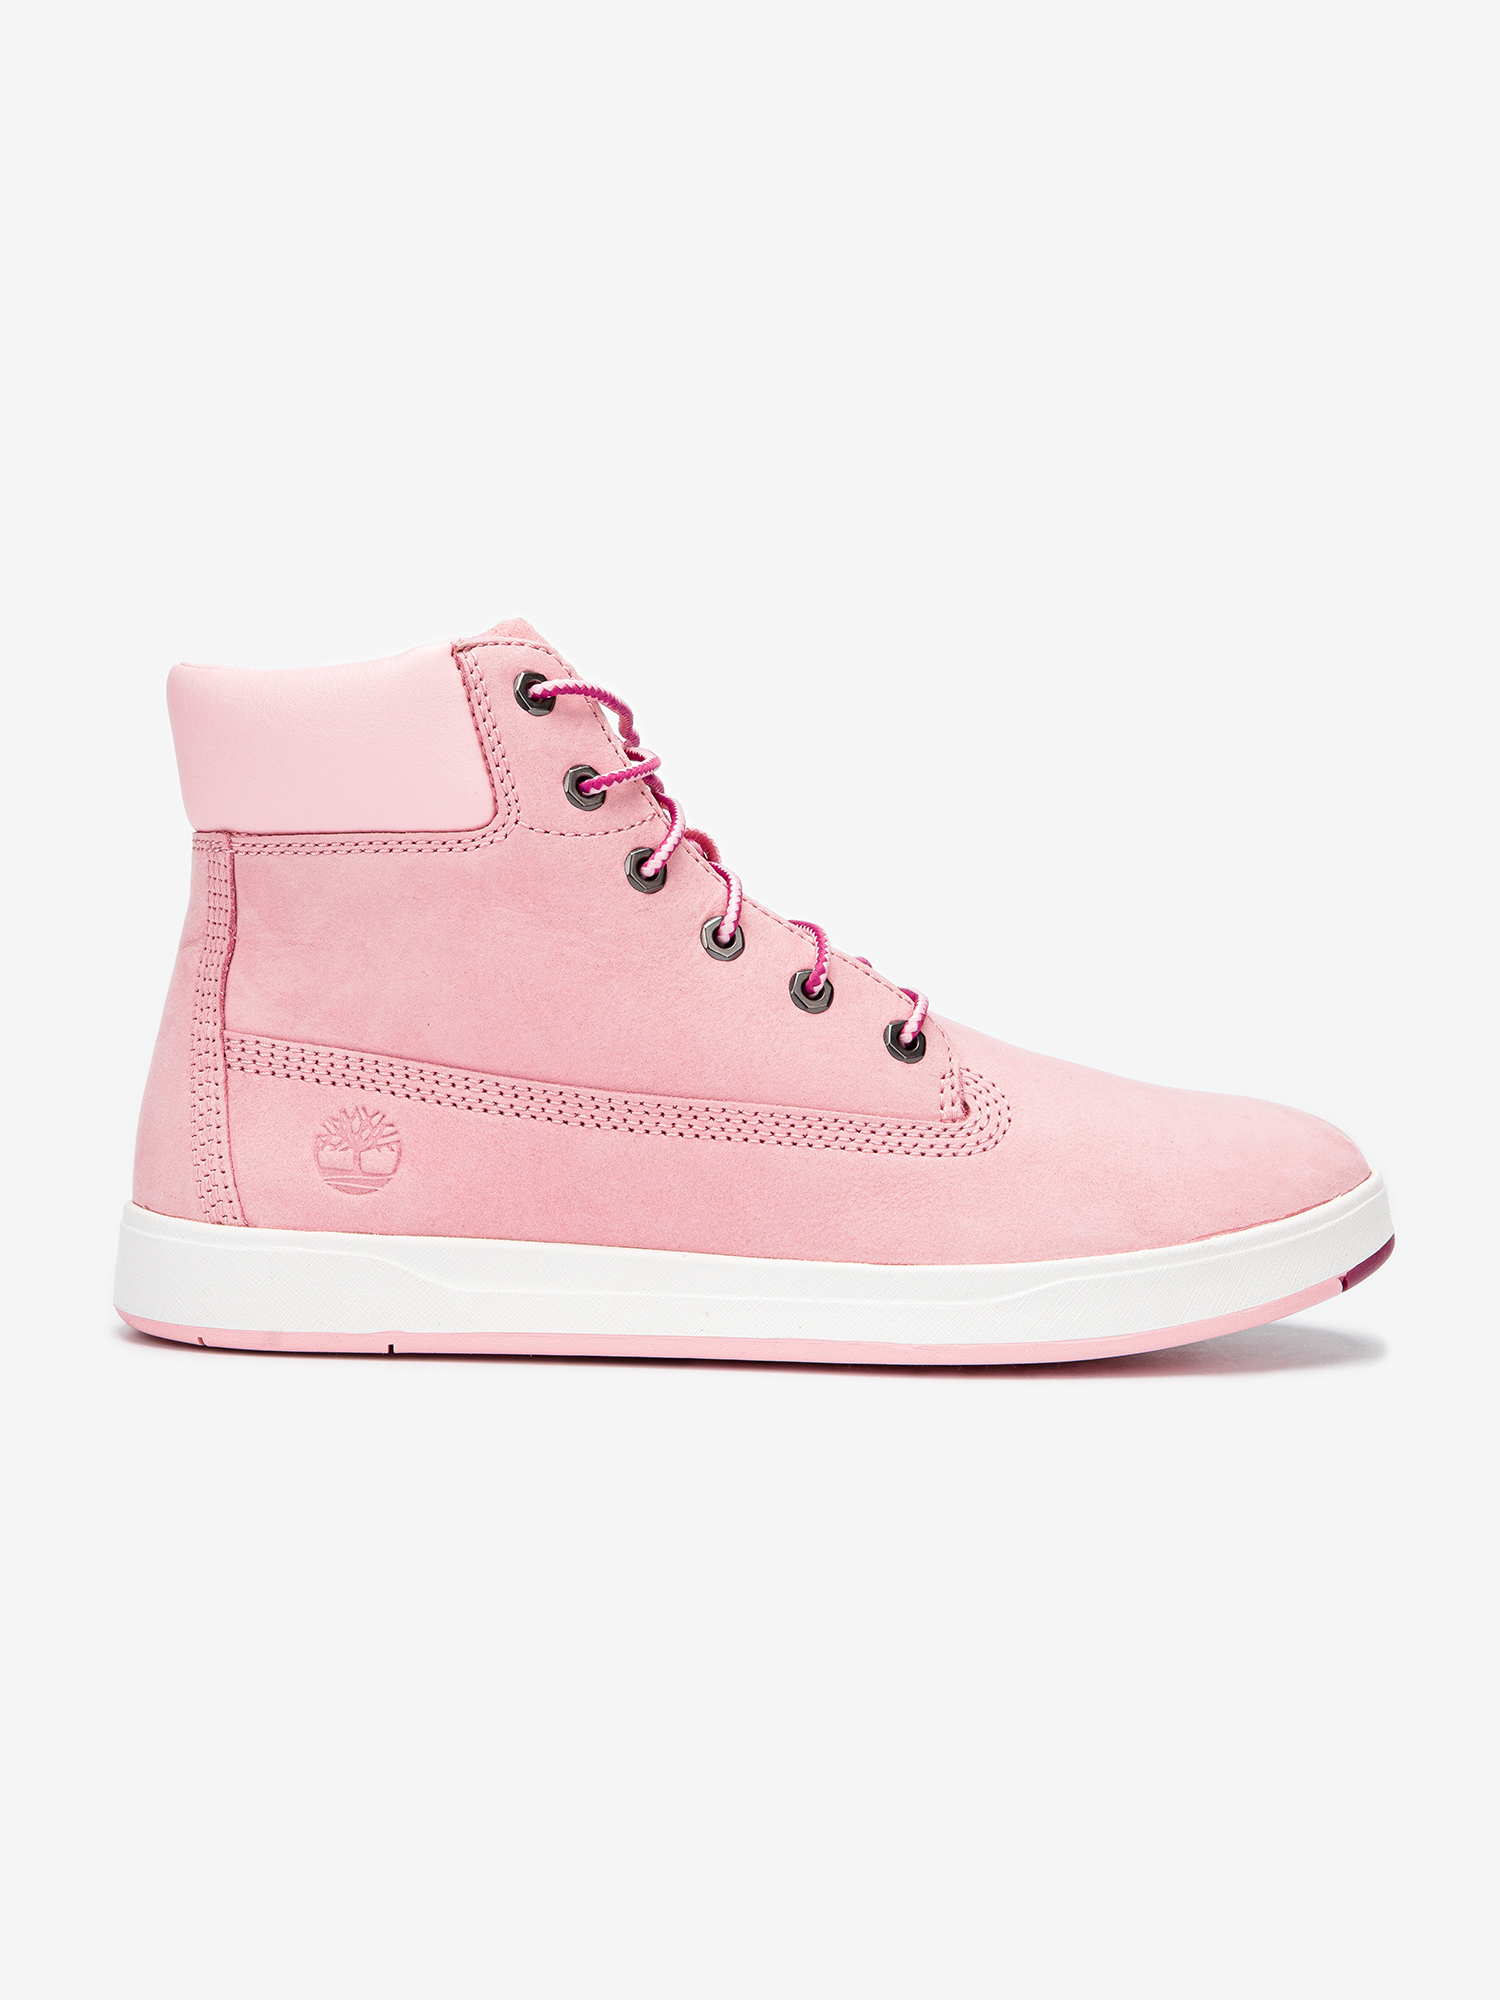 Boty Timberland Davis Square 6 Inch Prism Pink (1)